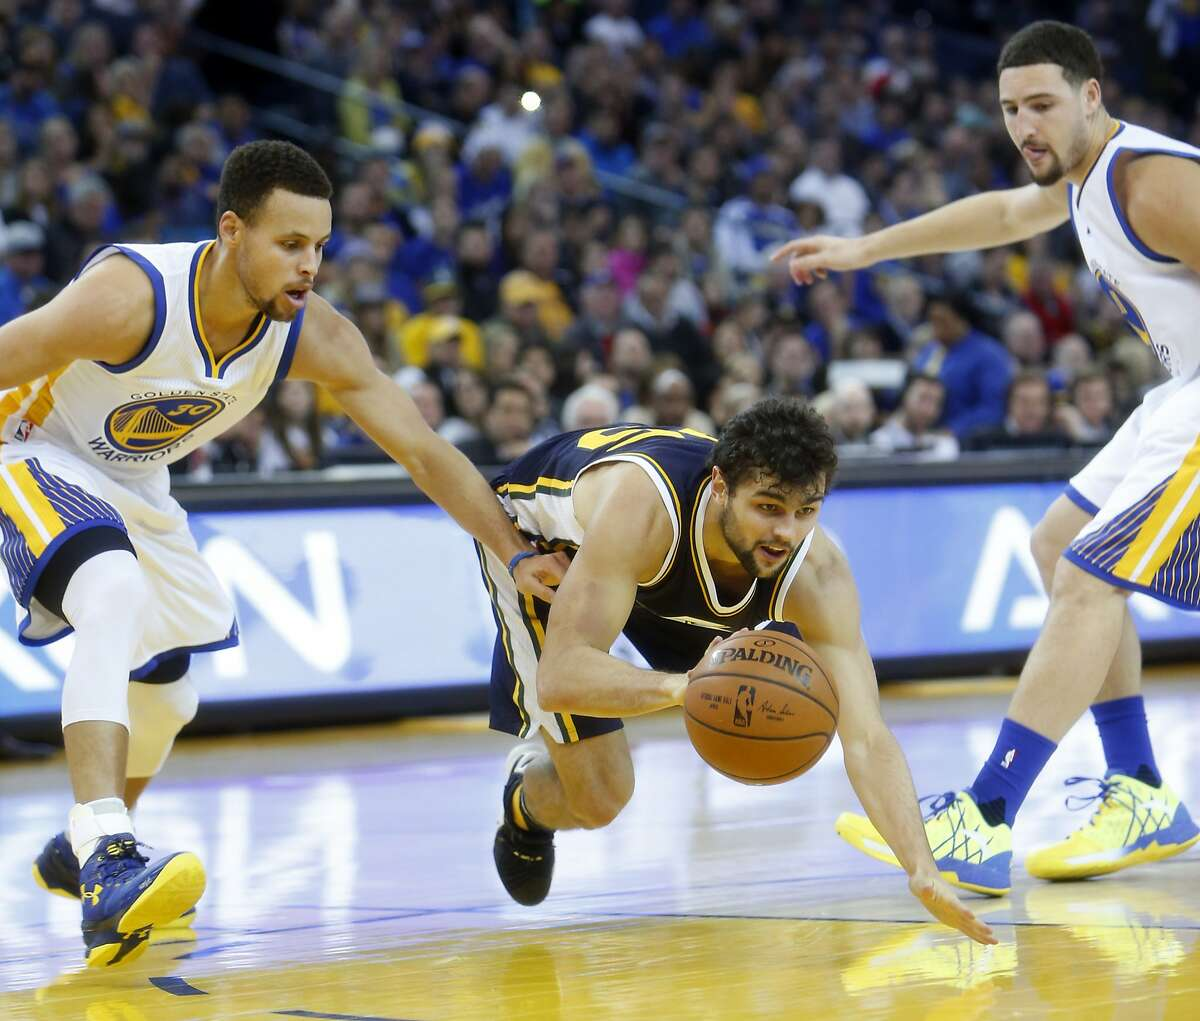 Golden State Warriors' Stephen Curry and Klay Thompson watch as Utah Jazz' Raul Neto falls while dribbling in 2nd quarter during NBA game at Oracle Arena in Oakland, Calif., on Wednesday, December 23, 2015.